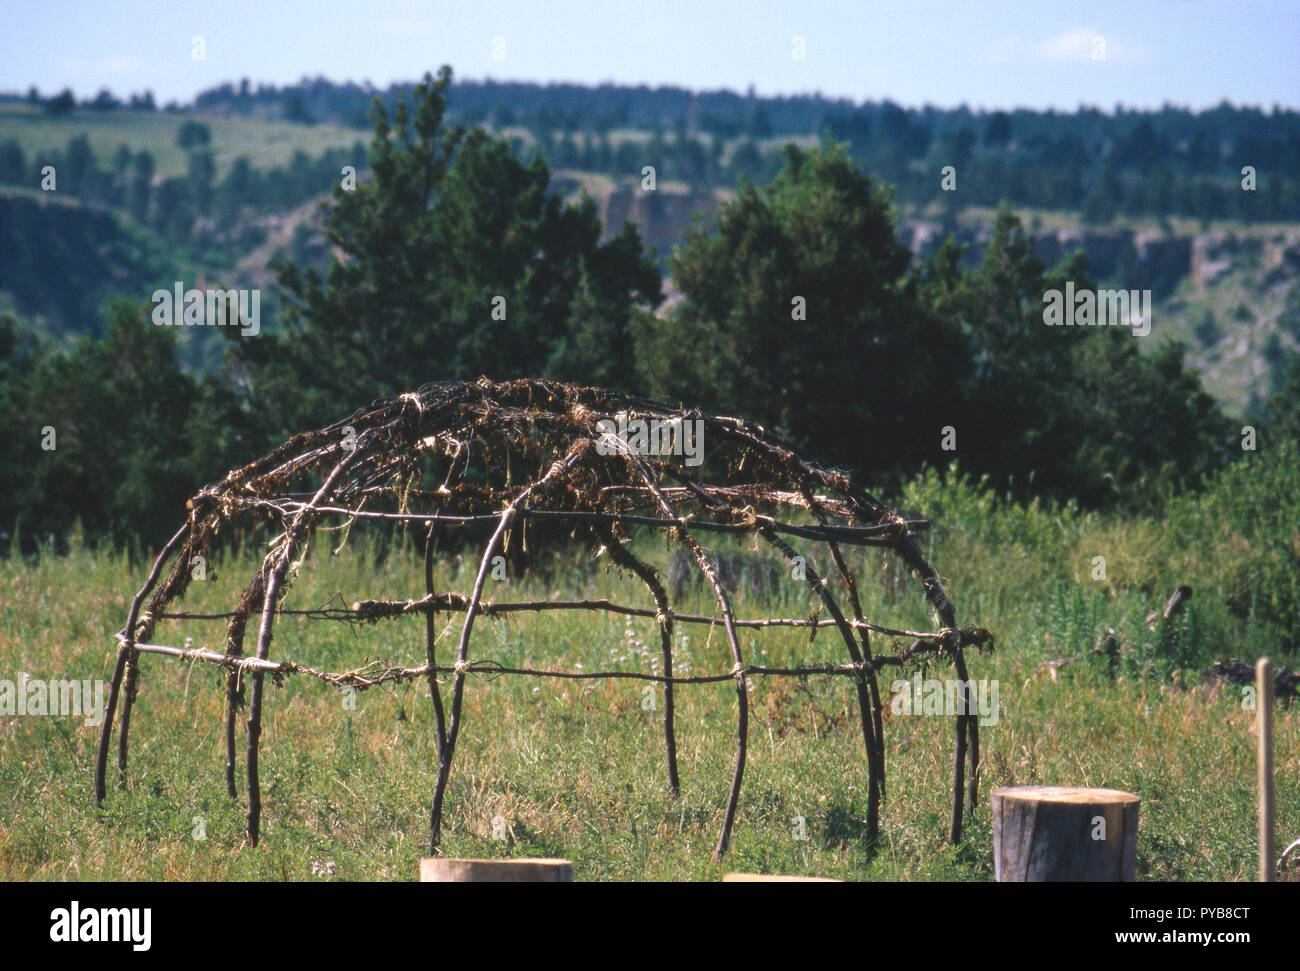 Framework of Sioux sweat lodge, Black Hills South Dakota. Photograph - Stock Image